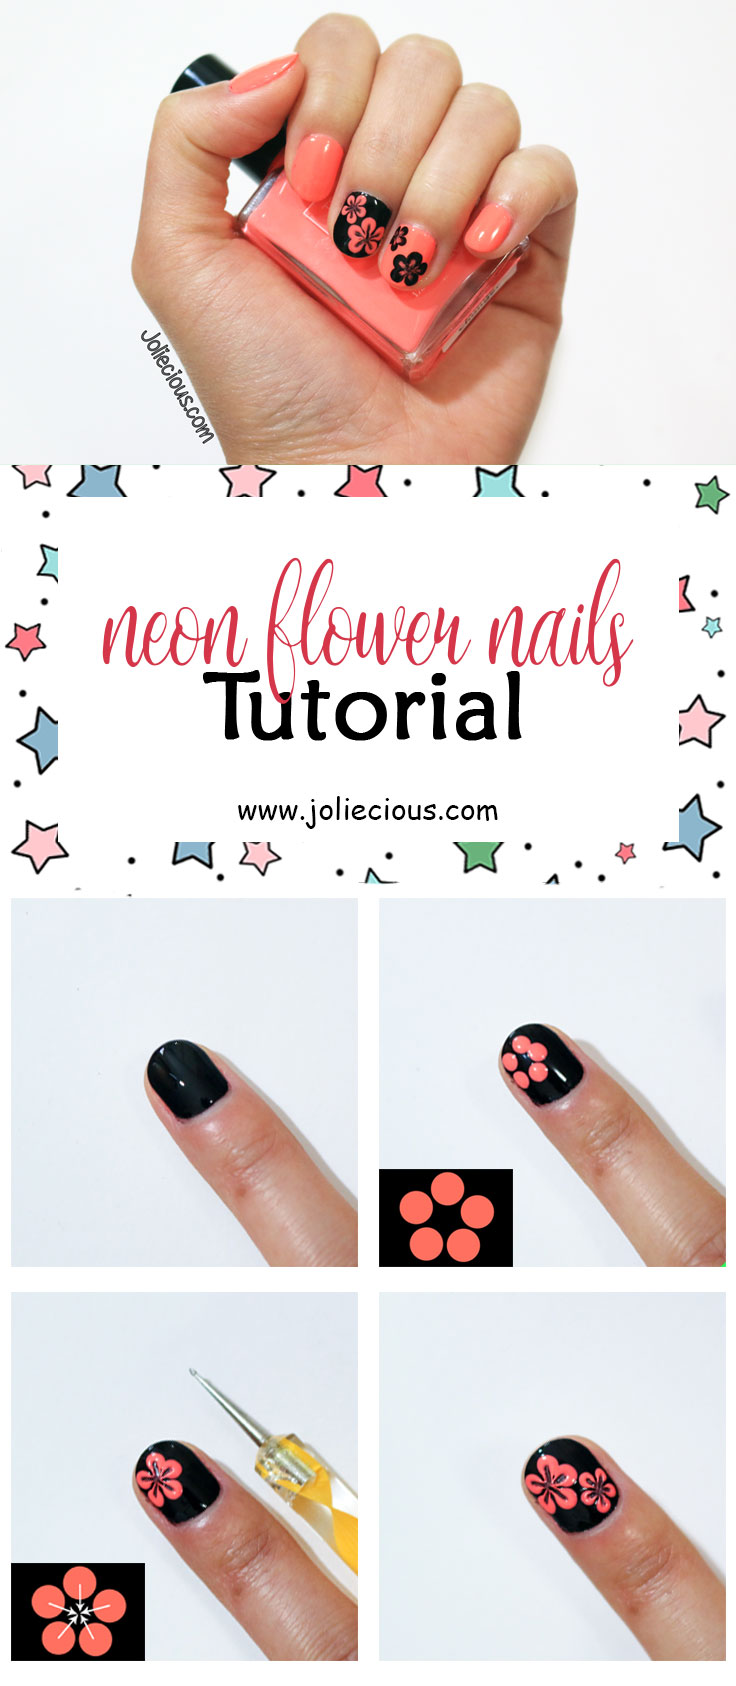 Neon flower nails tutorial